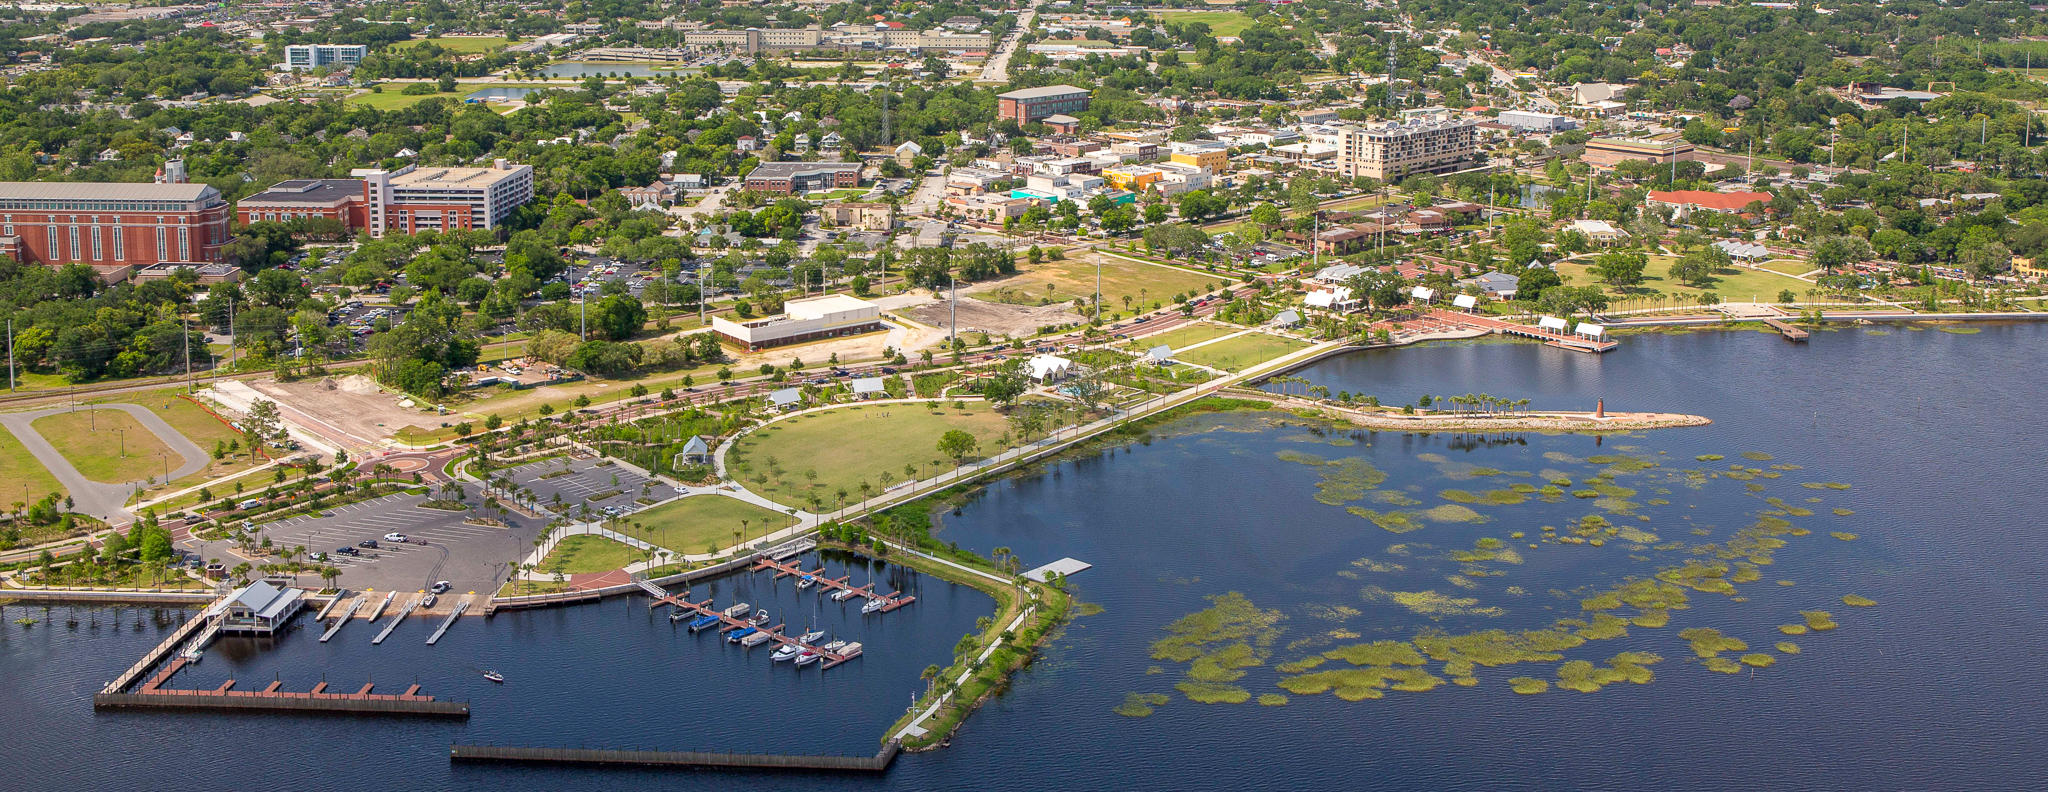 Kissimmee_Lakefront_Park_Phase_2_201604_